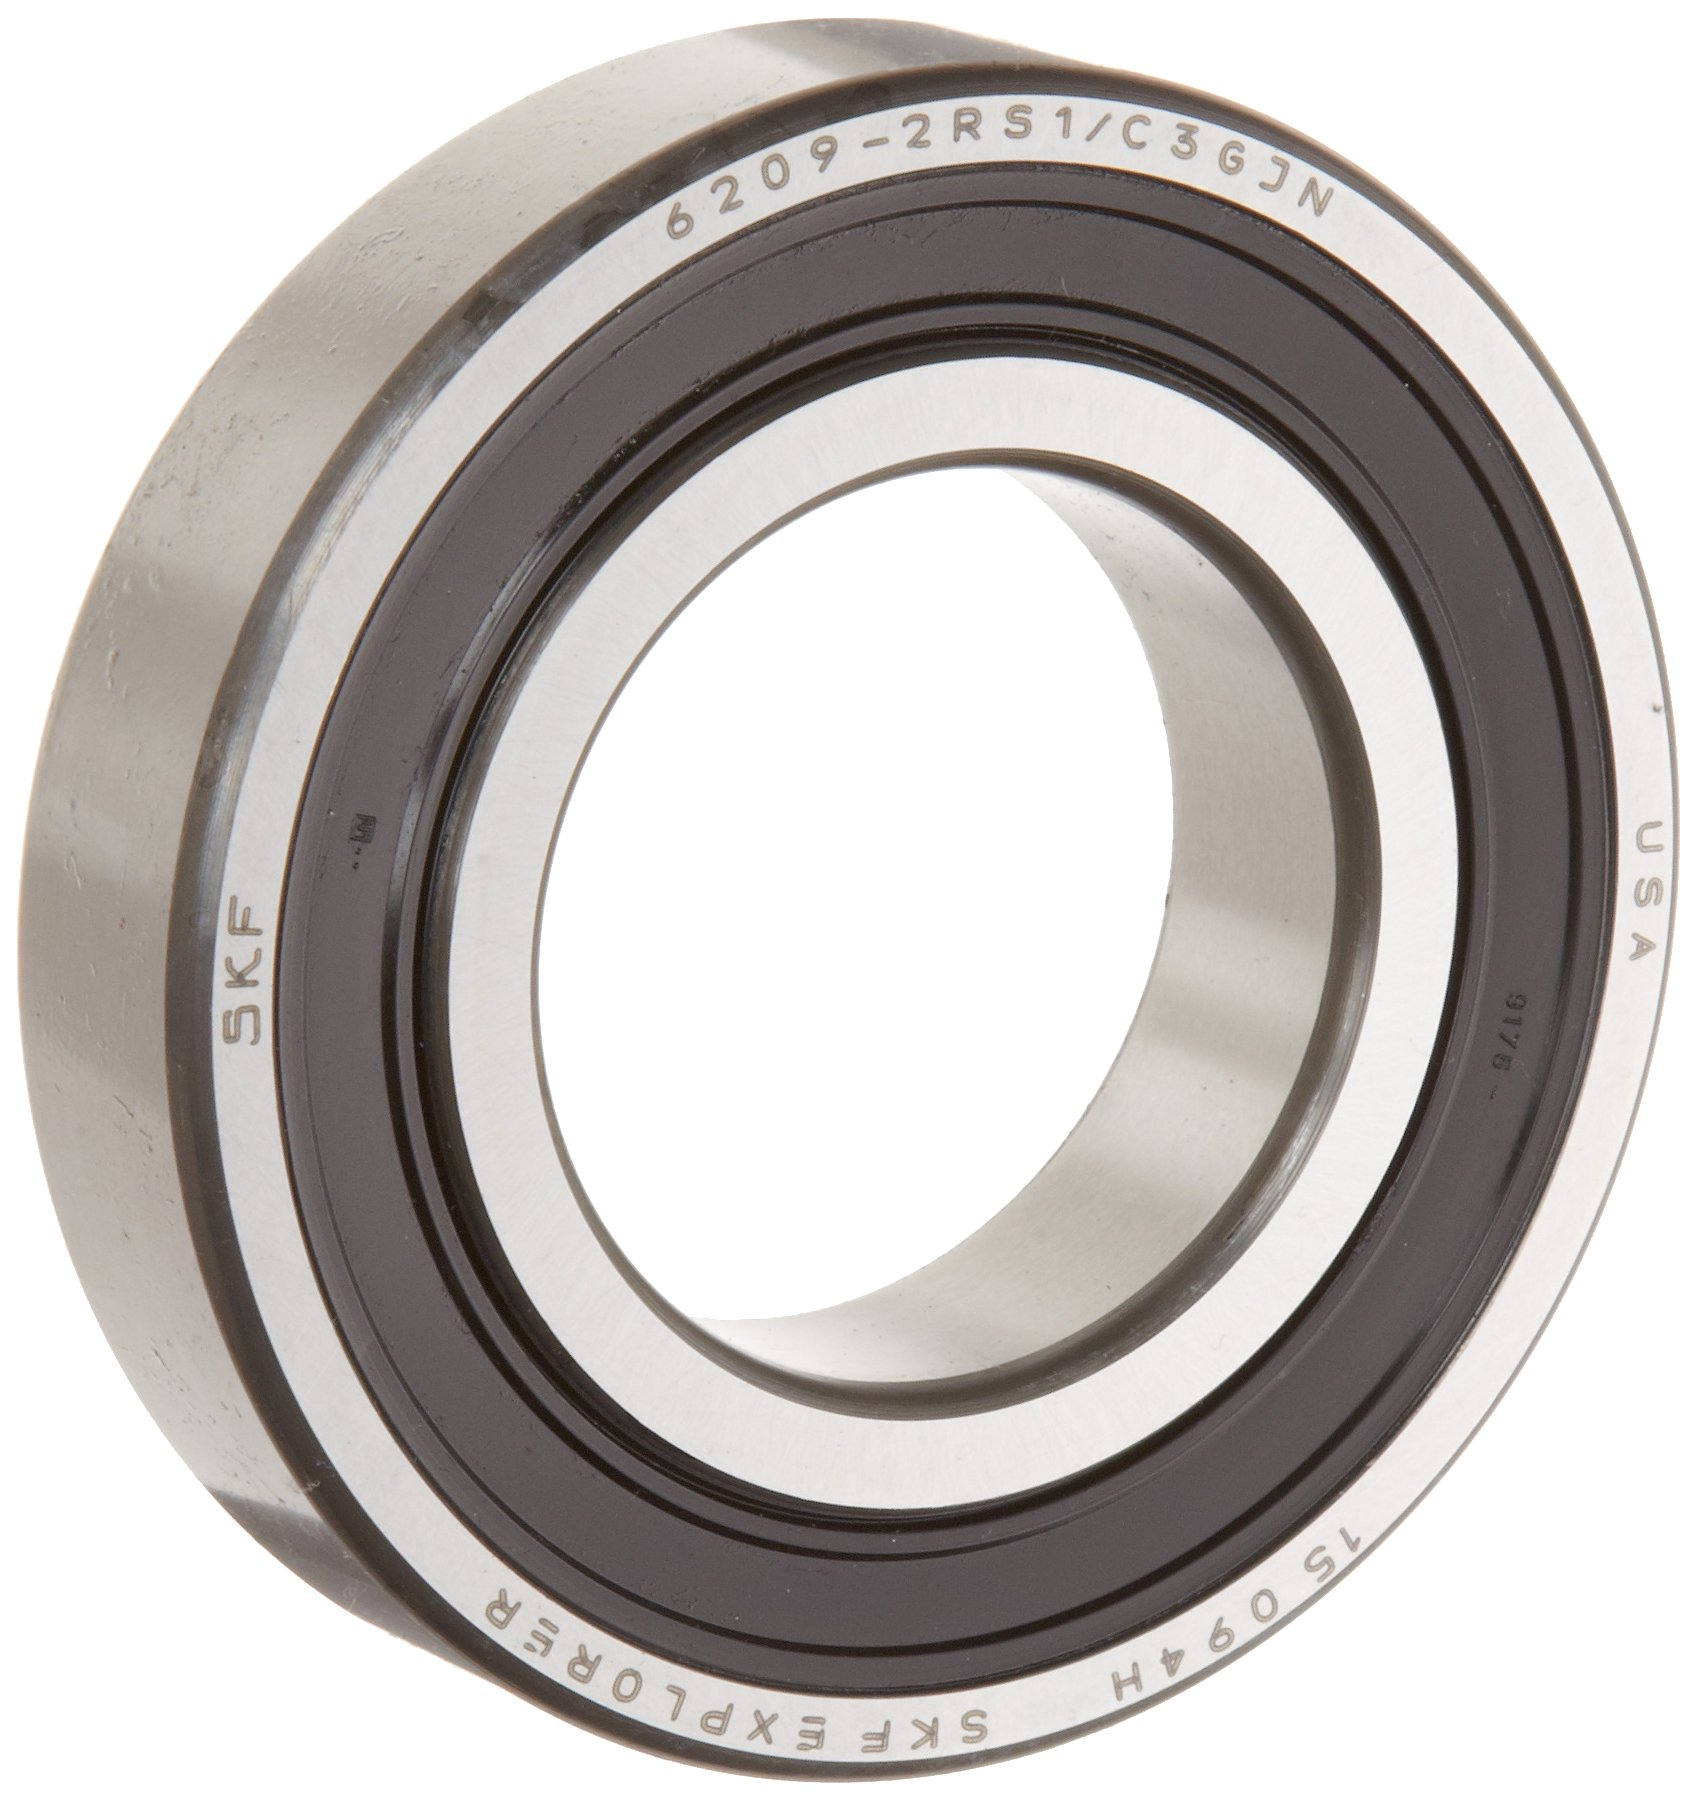 SKF 6206 2RSJEM Light Series Deep Groove Ball Bearing, Deep Groove Design, ABEC 1 Precision, Double Sealed, Contact, Steel Cage, C3 Clearance, 30mm Bore, 62mm OD, 16mm Width, 2520.0 pounds Static Load Capacity, 4380.00 pounds Dynamic Load Capacity